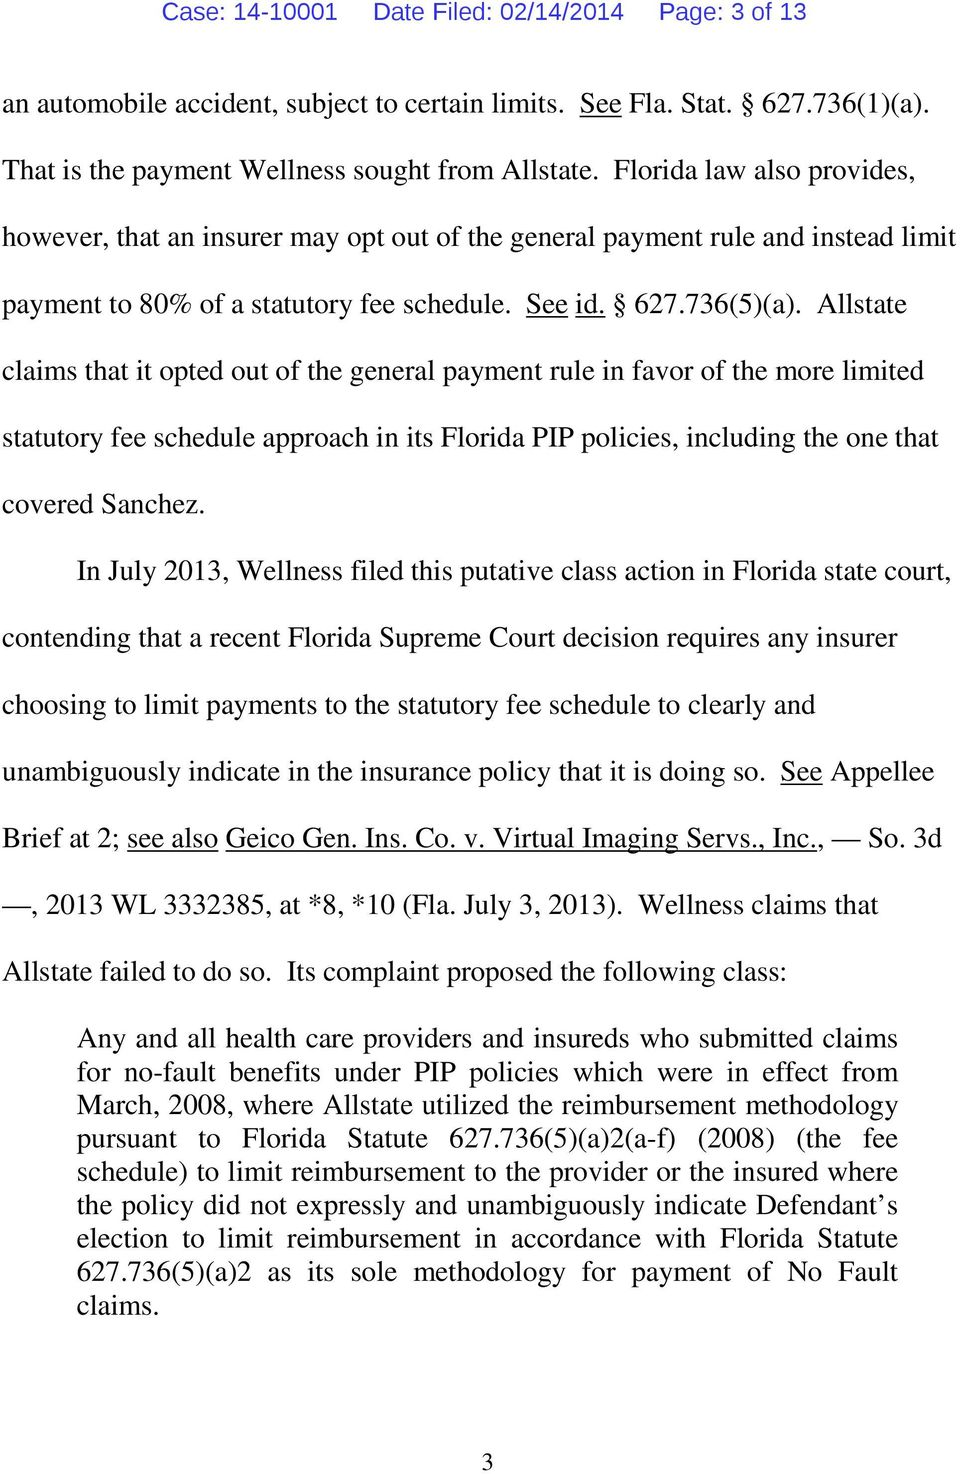 Allstate claims that it opted out of the general payment rule in favor of the more limited statutory fee schedule approach in its Florida PIP policies, including the one that covered Sanchez.